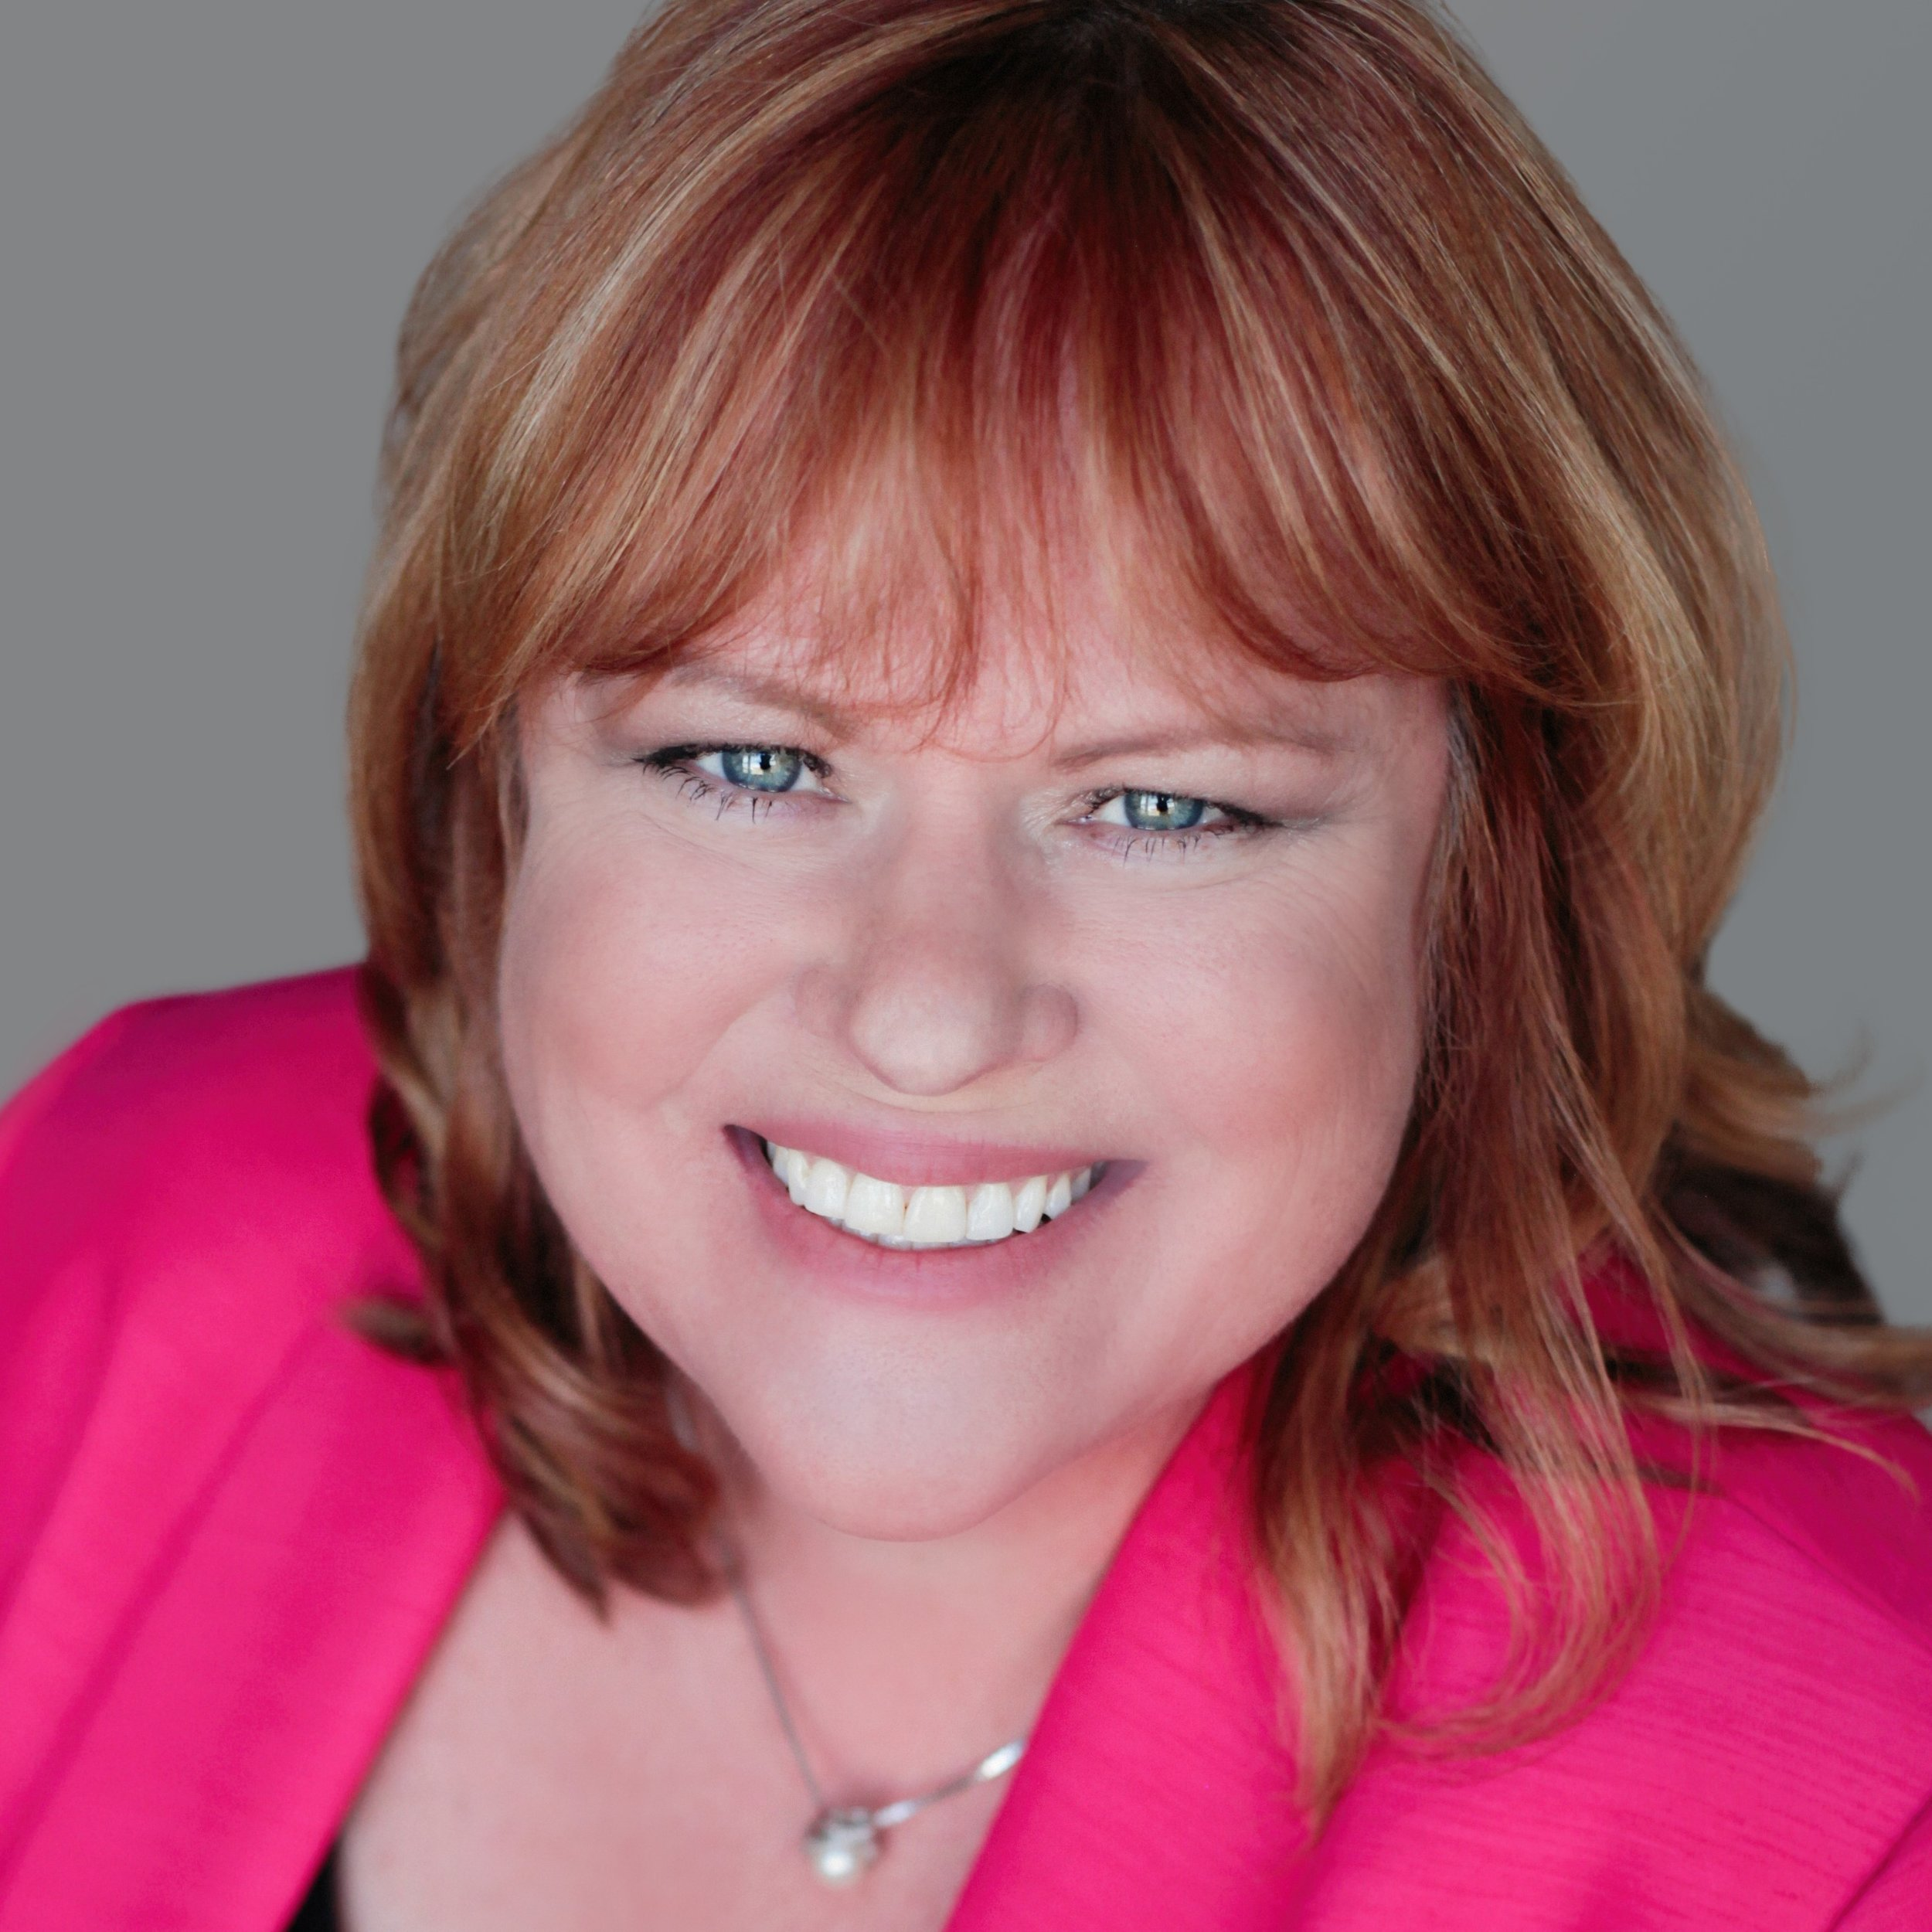 Clare leverages expertise to help businesses. She leverages programs she has developed and continues to refine. Using effective tools to assist individuals and team development.